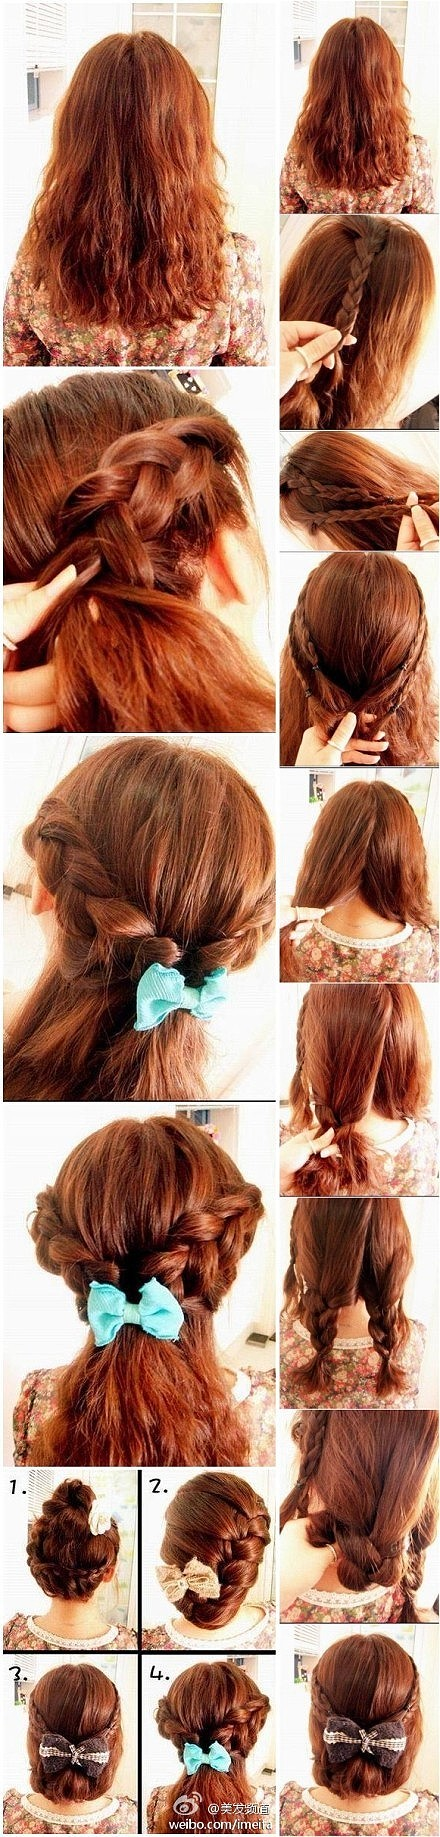 Some examples of what you can do with braided hair referenced